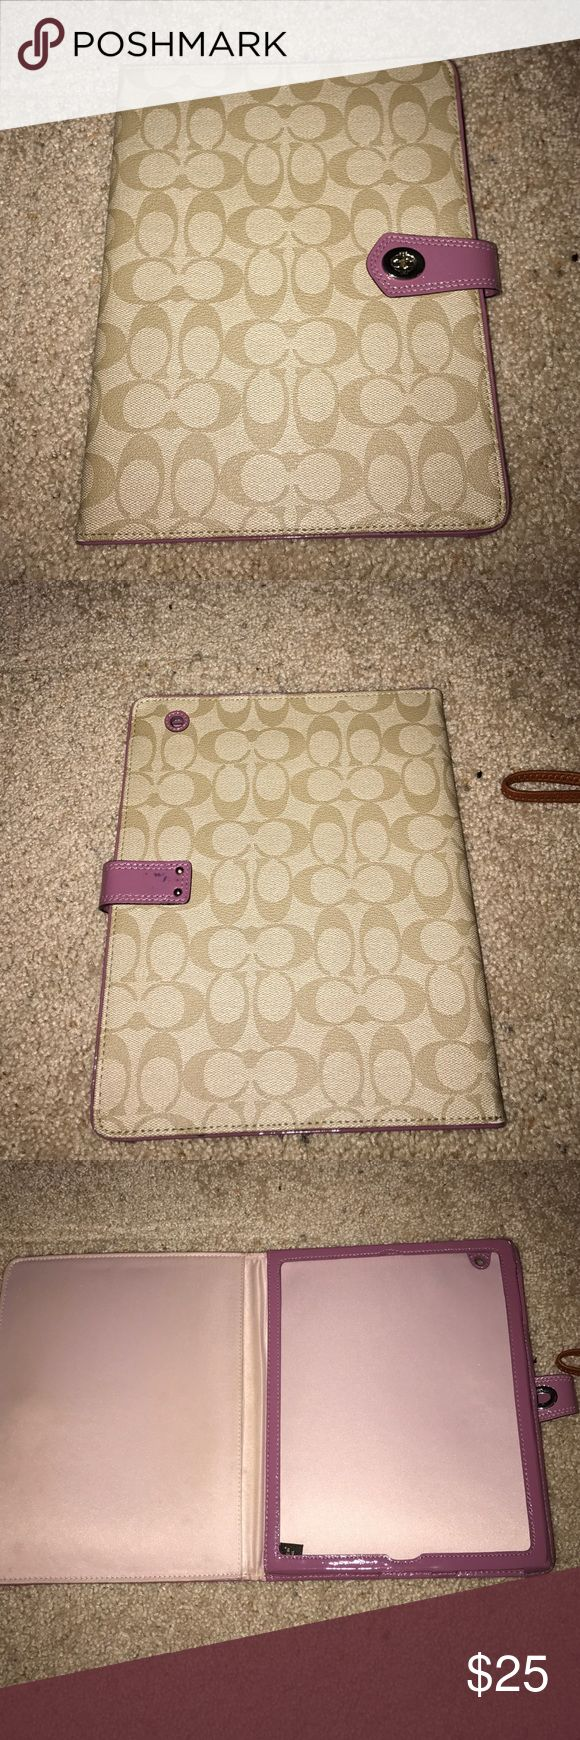 coach ipad 2 case tan and light purple coach i pad 2 case. button broke off the front, but still holds ipad just fine. Coach Bags Cosmetic Bags & Cases